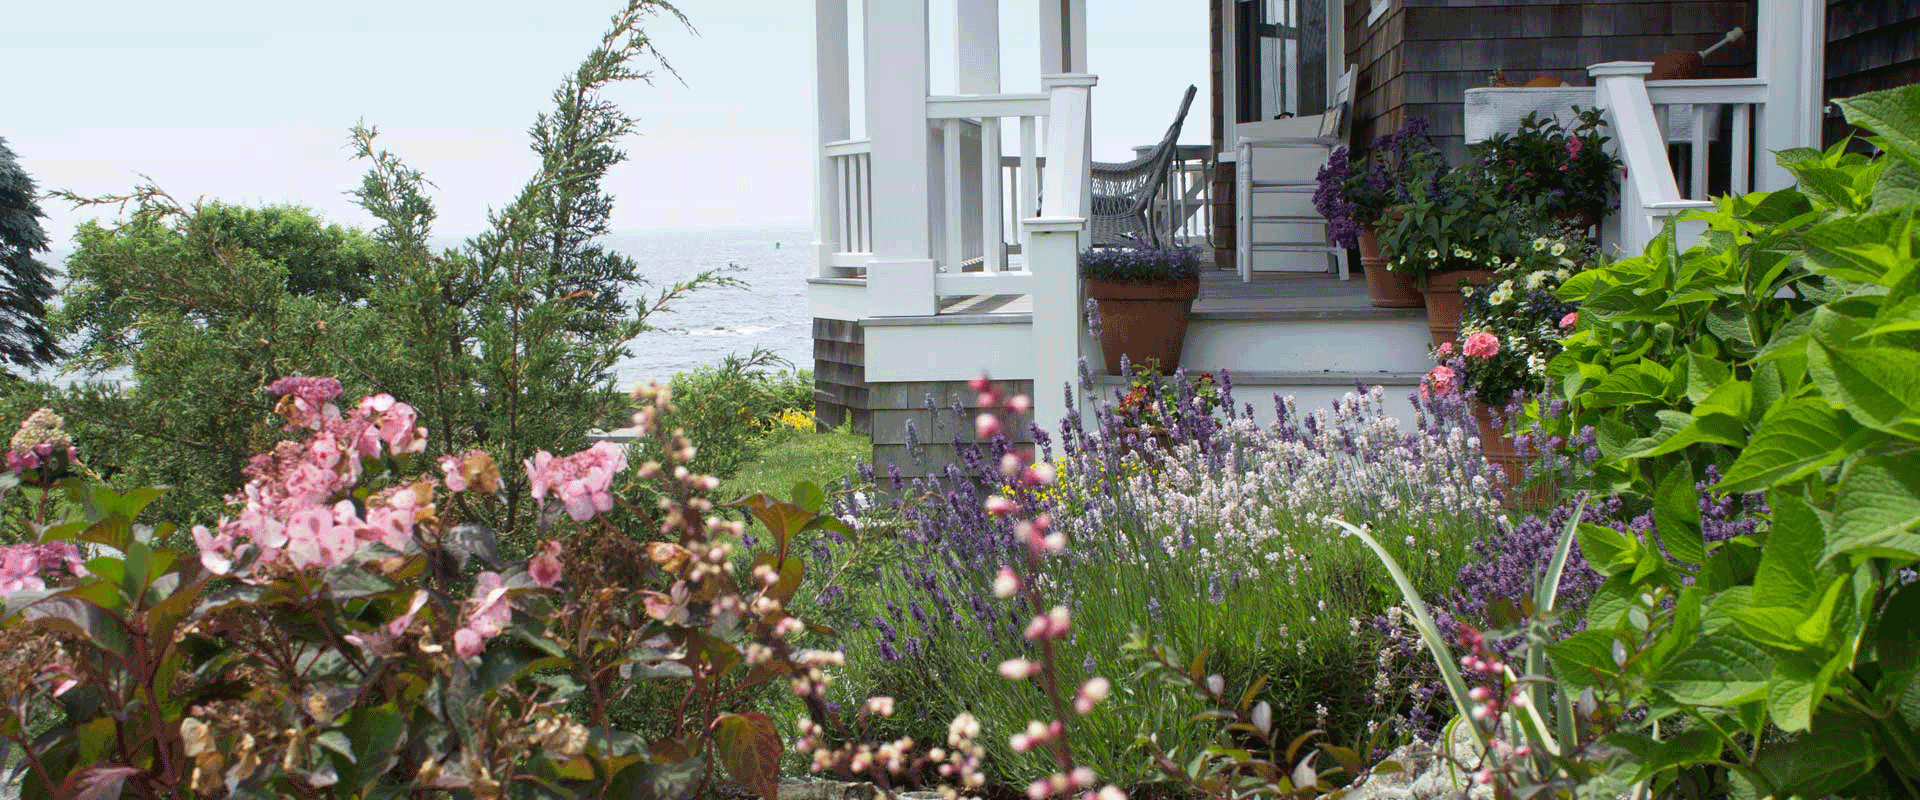 Landscape designer kennebunkport maine landscaping for Sustainable landscape design